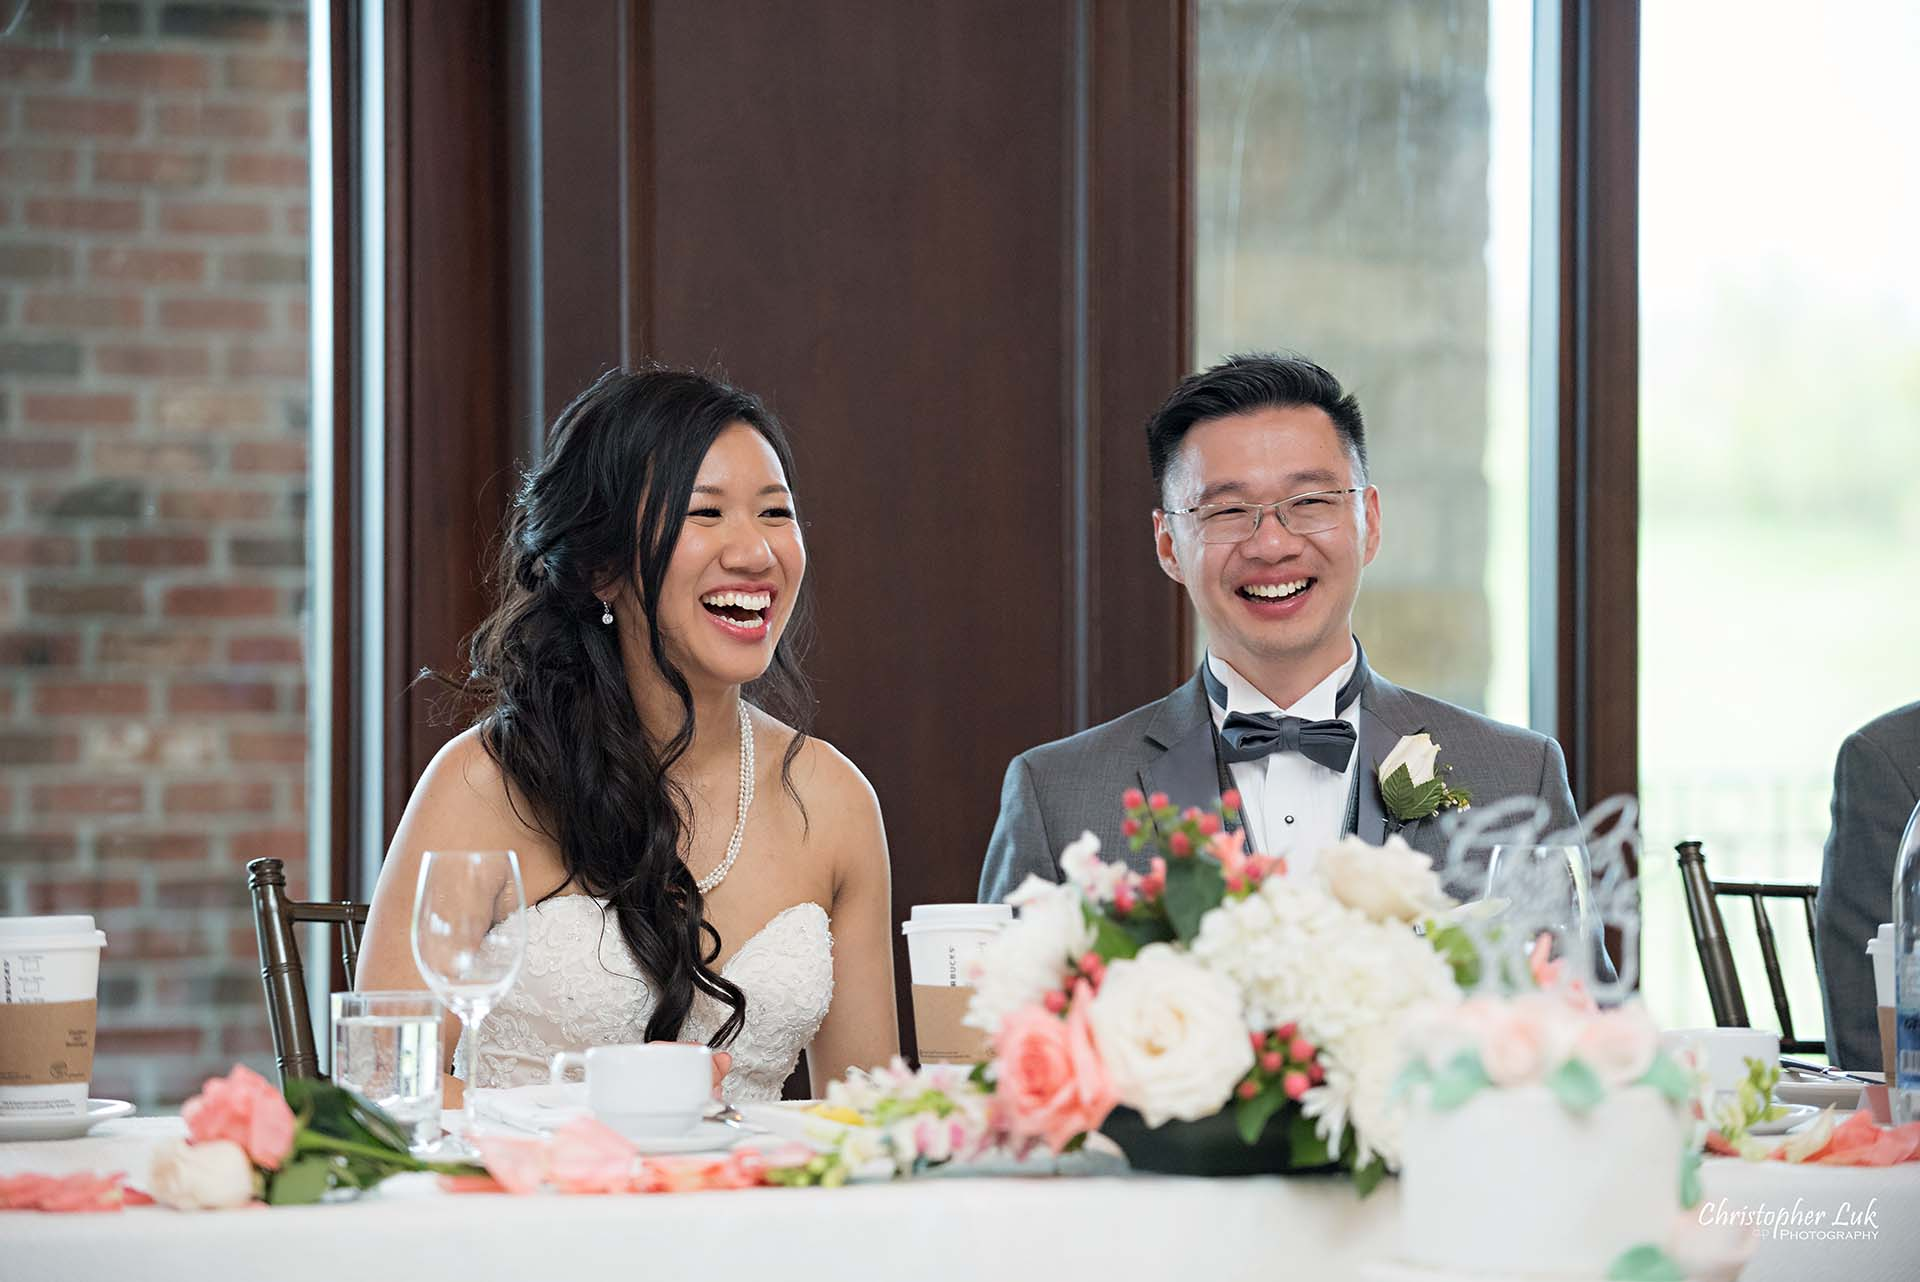 Christopher Luk Toronto Wedding Photographer Eagles Nest Golf Club Course Clubhouse Bride Groom Natural Candid Photojournalistic Great Hall Dinner Reception Speeches Reaction Laugh